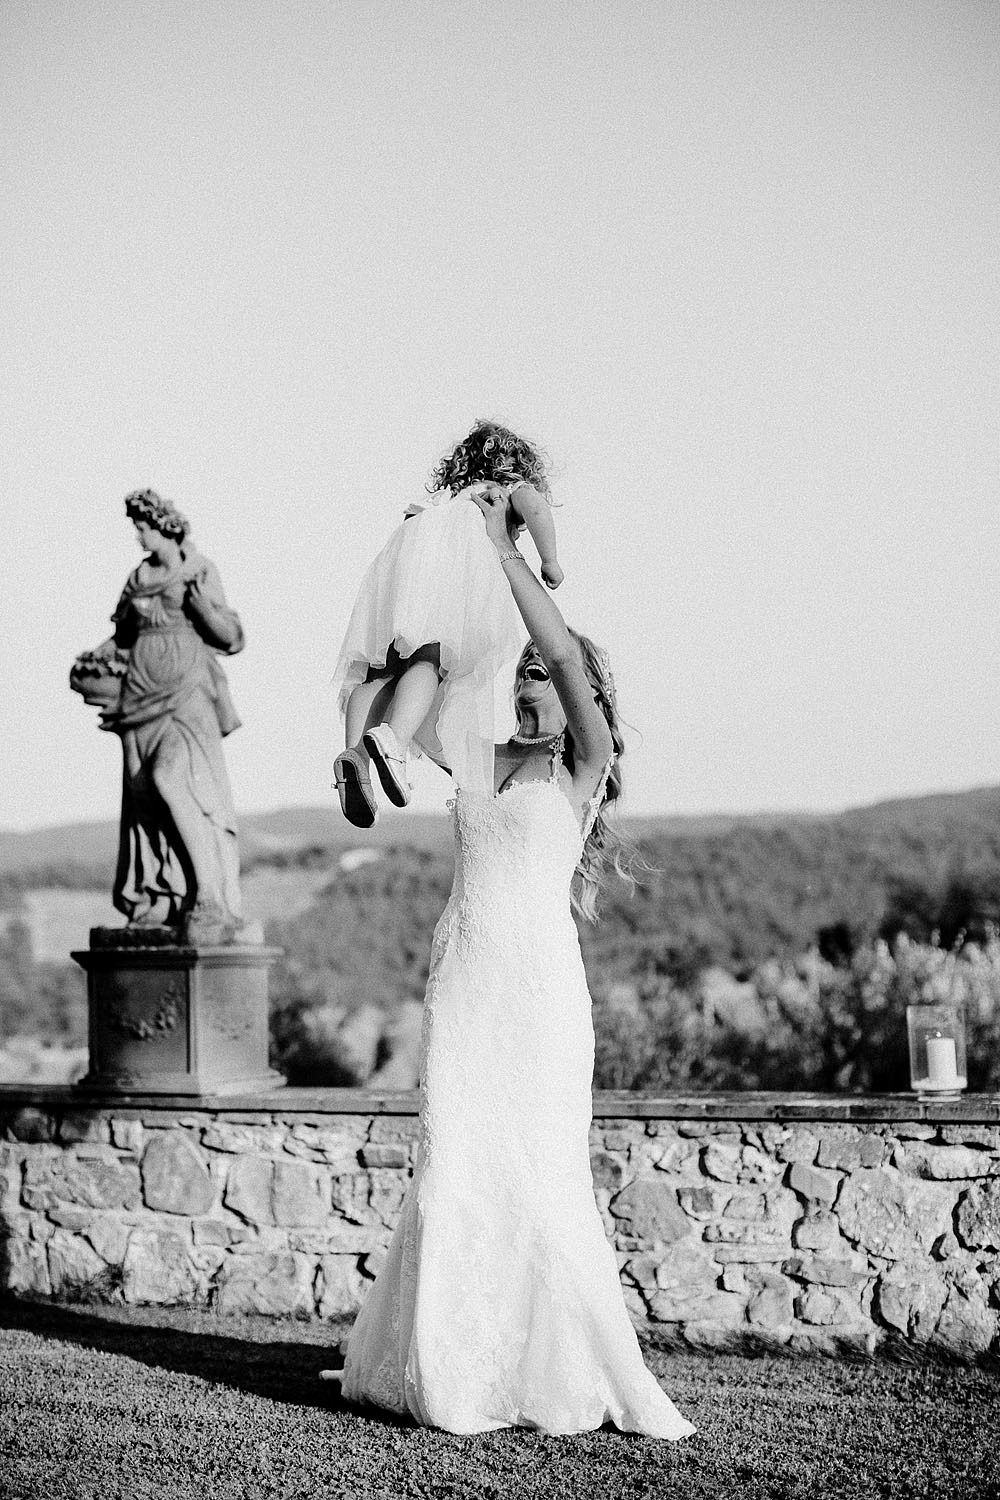 Romantic and Rustic Wedding Chic in Chianti Tuscany :: Luxury wedding photography - 41